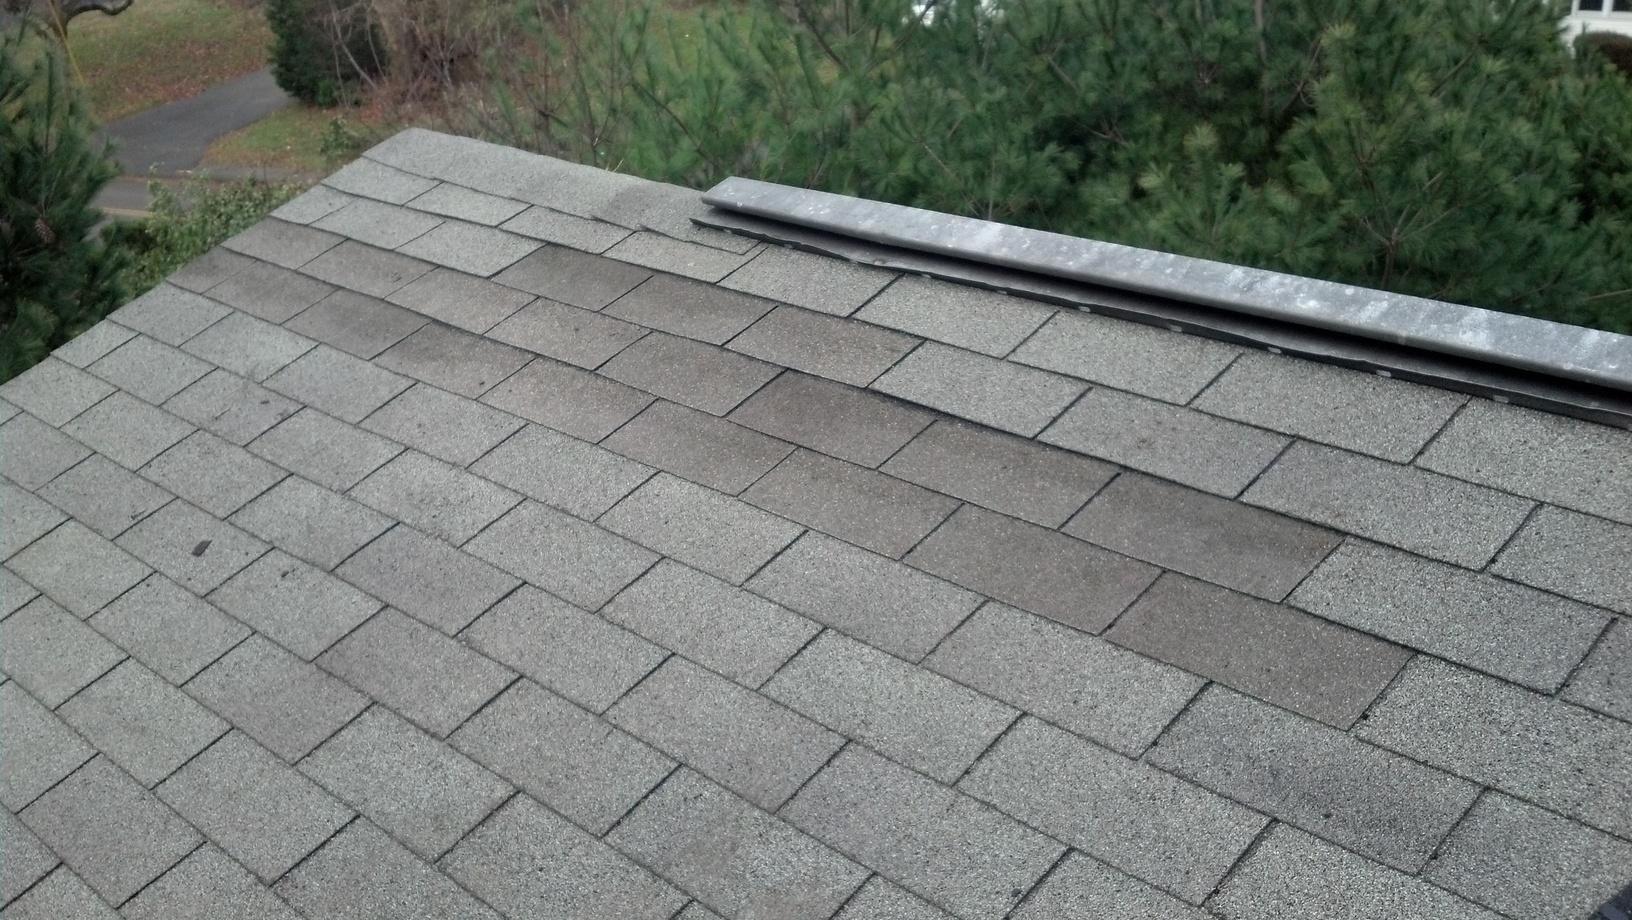 Roof Repair in Fairfield and New Haven Counties : Post Storm Sandy - After Photo